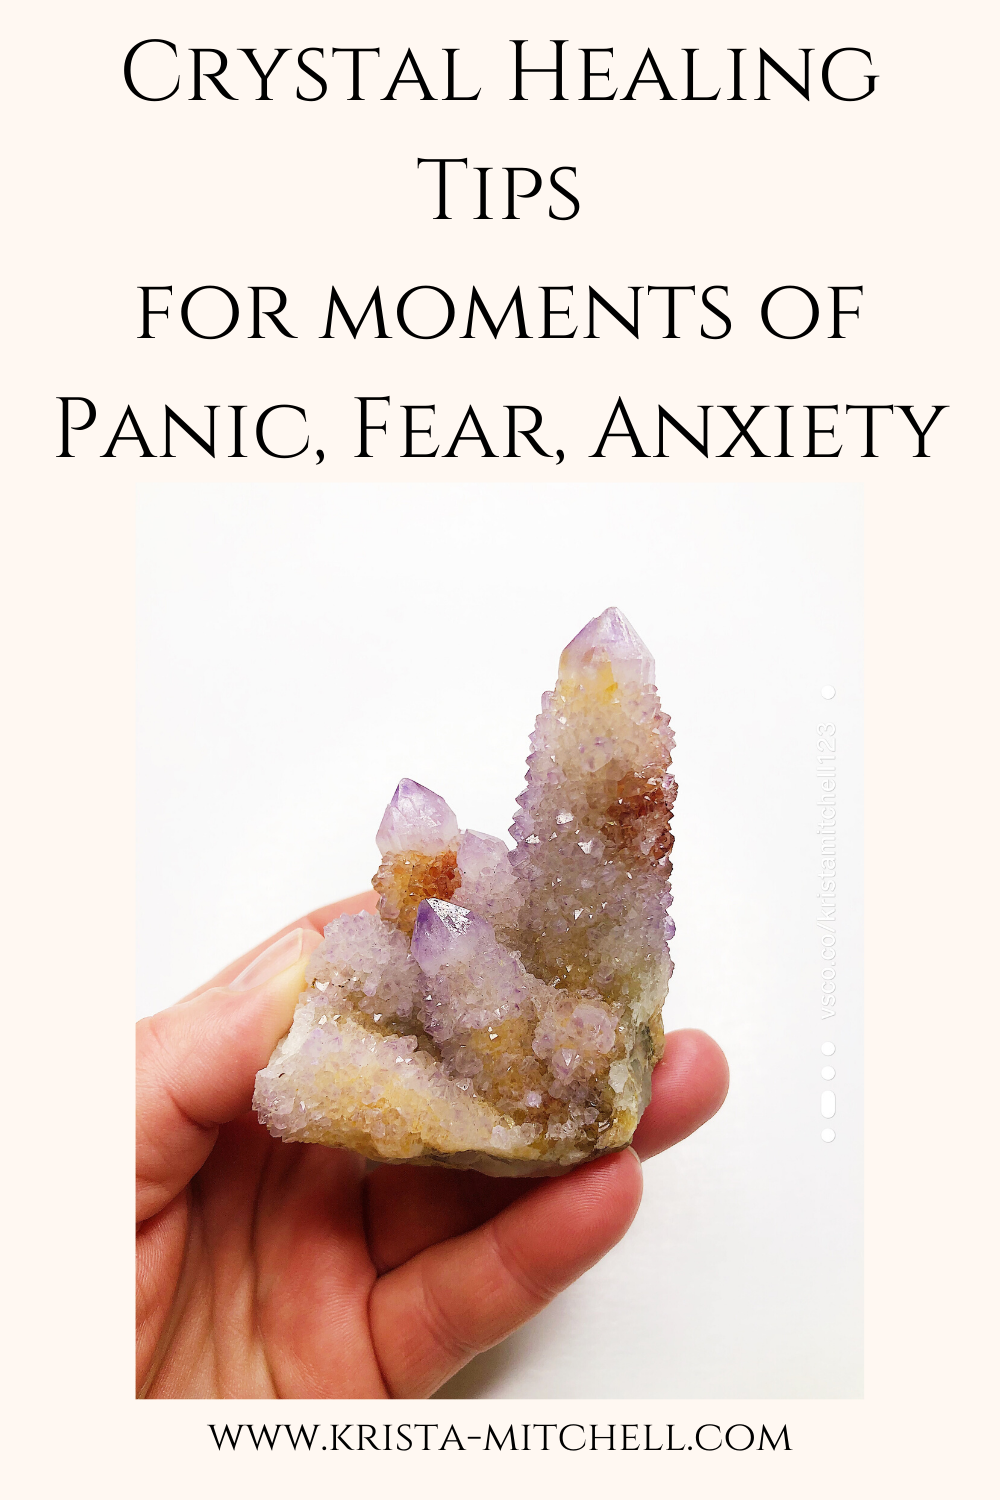 Crystal Healing Tips for Moments of Panic, Fear, Anxiety / www.krista-mitchell.com